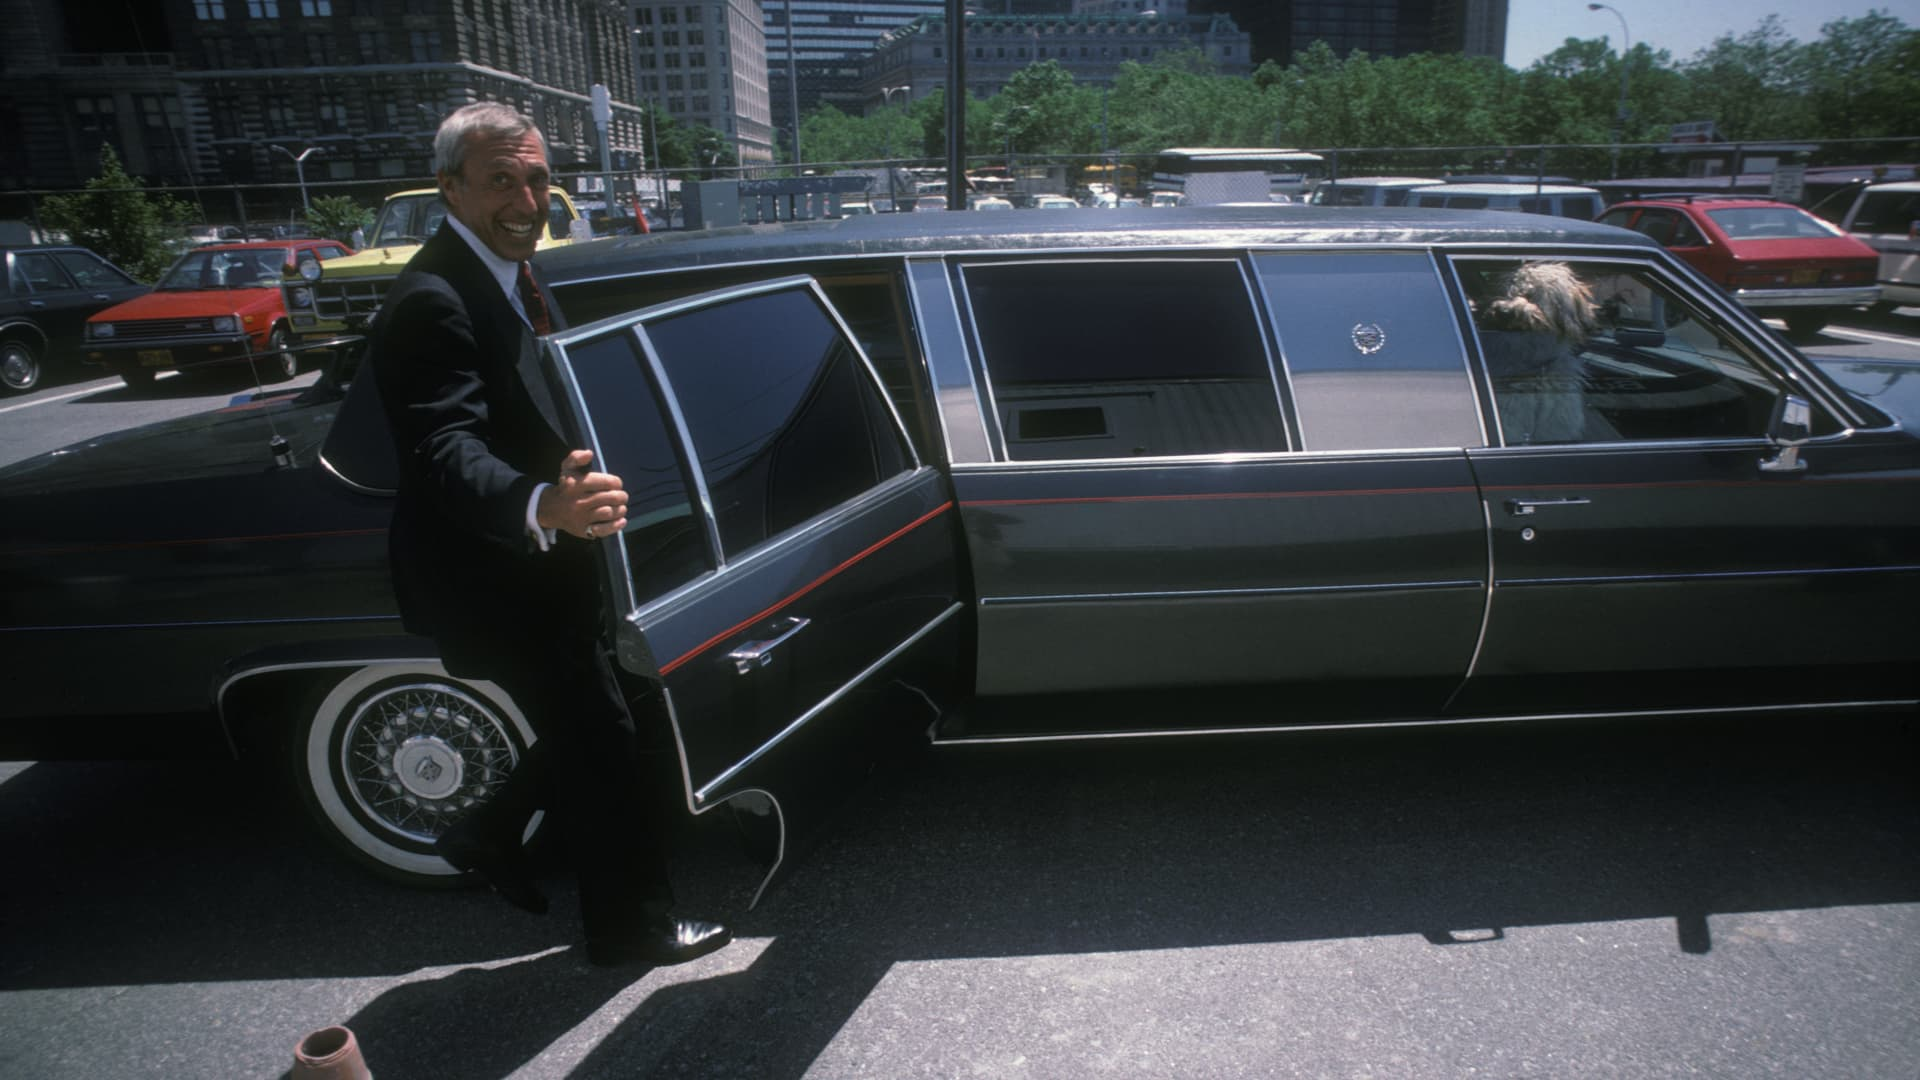 Ivan Boesky enters his limousine in 1986.